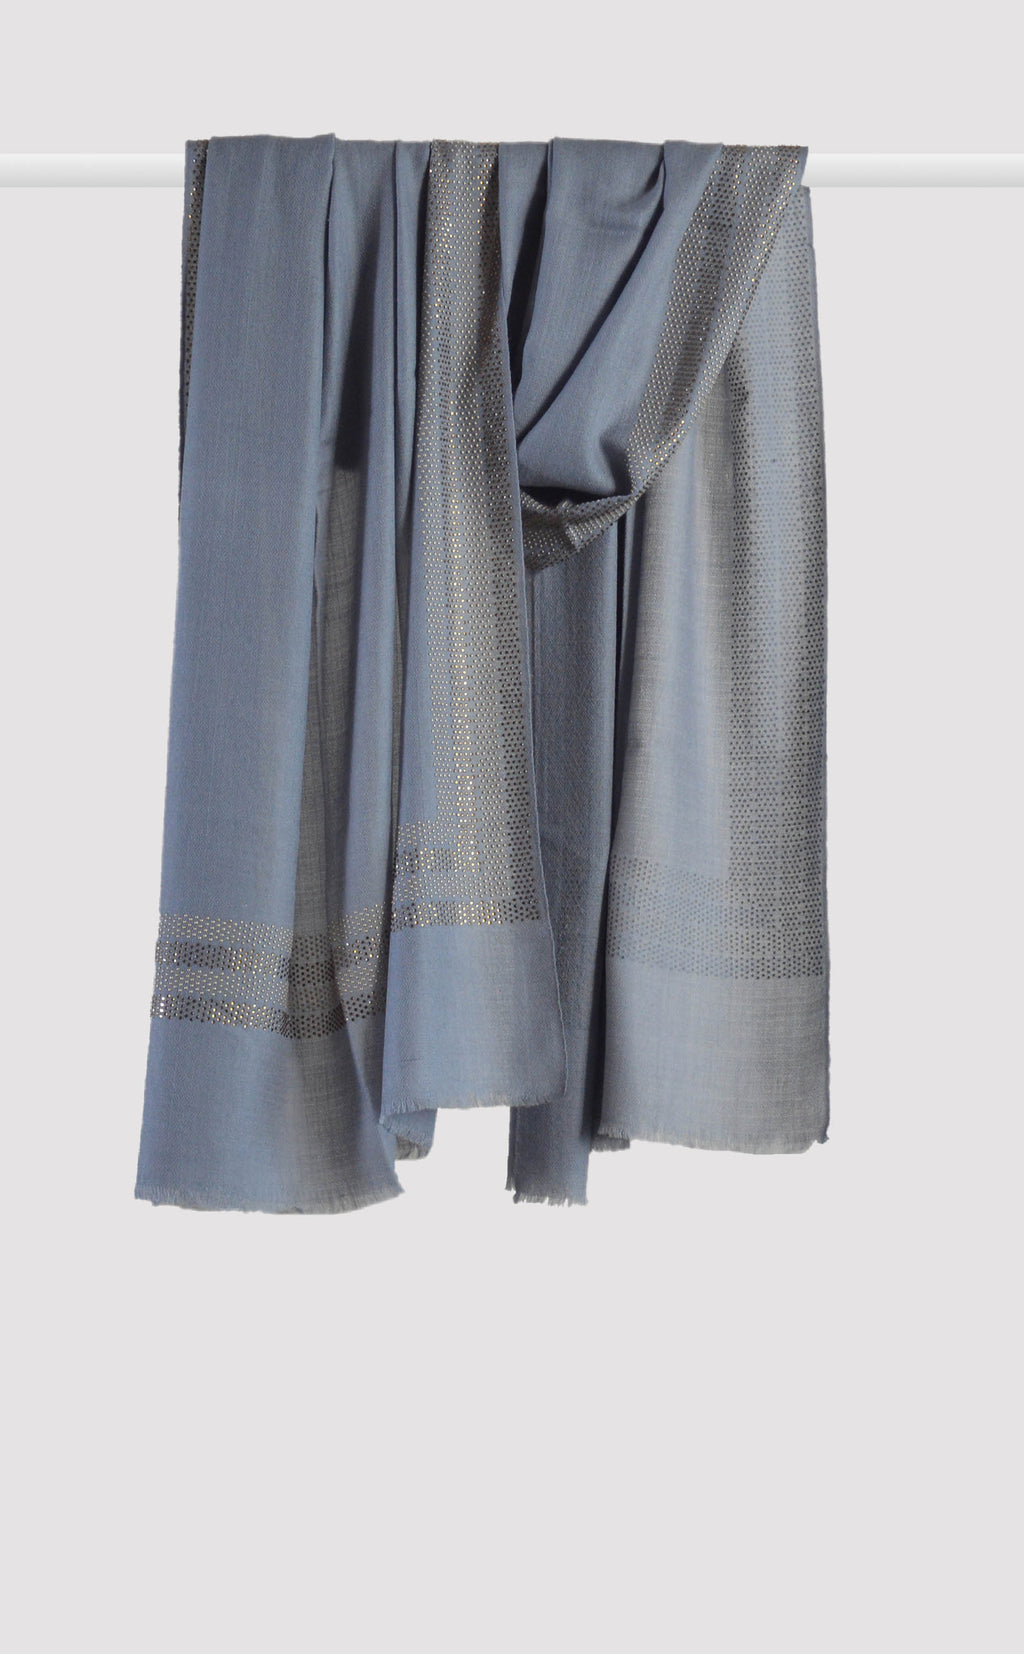 Dusty Blue Embellished Stole